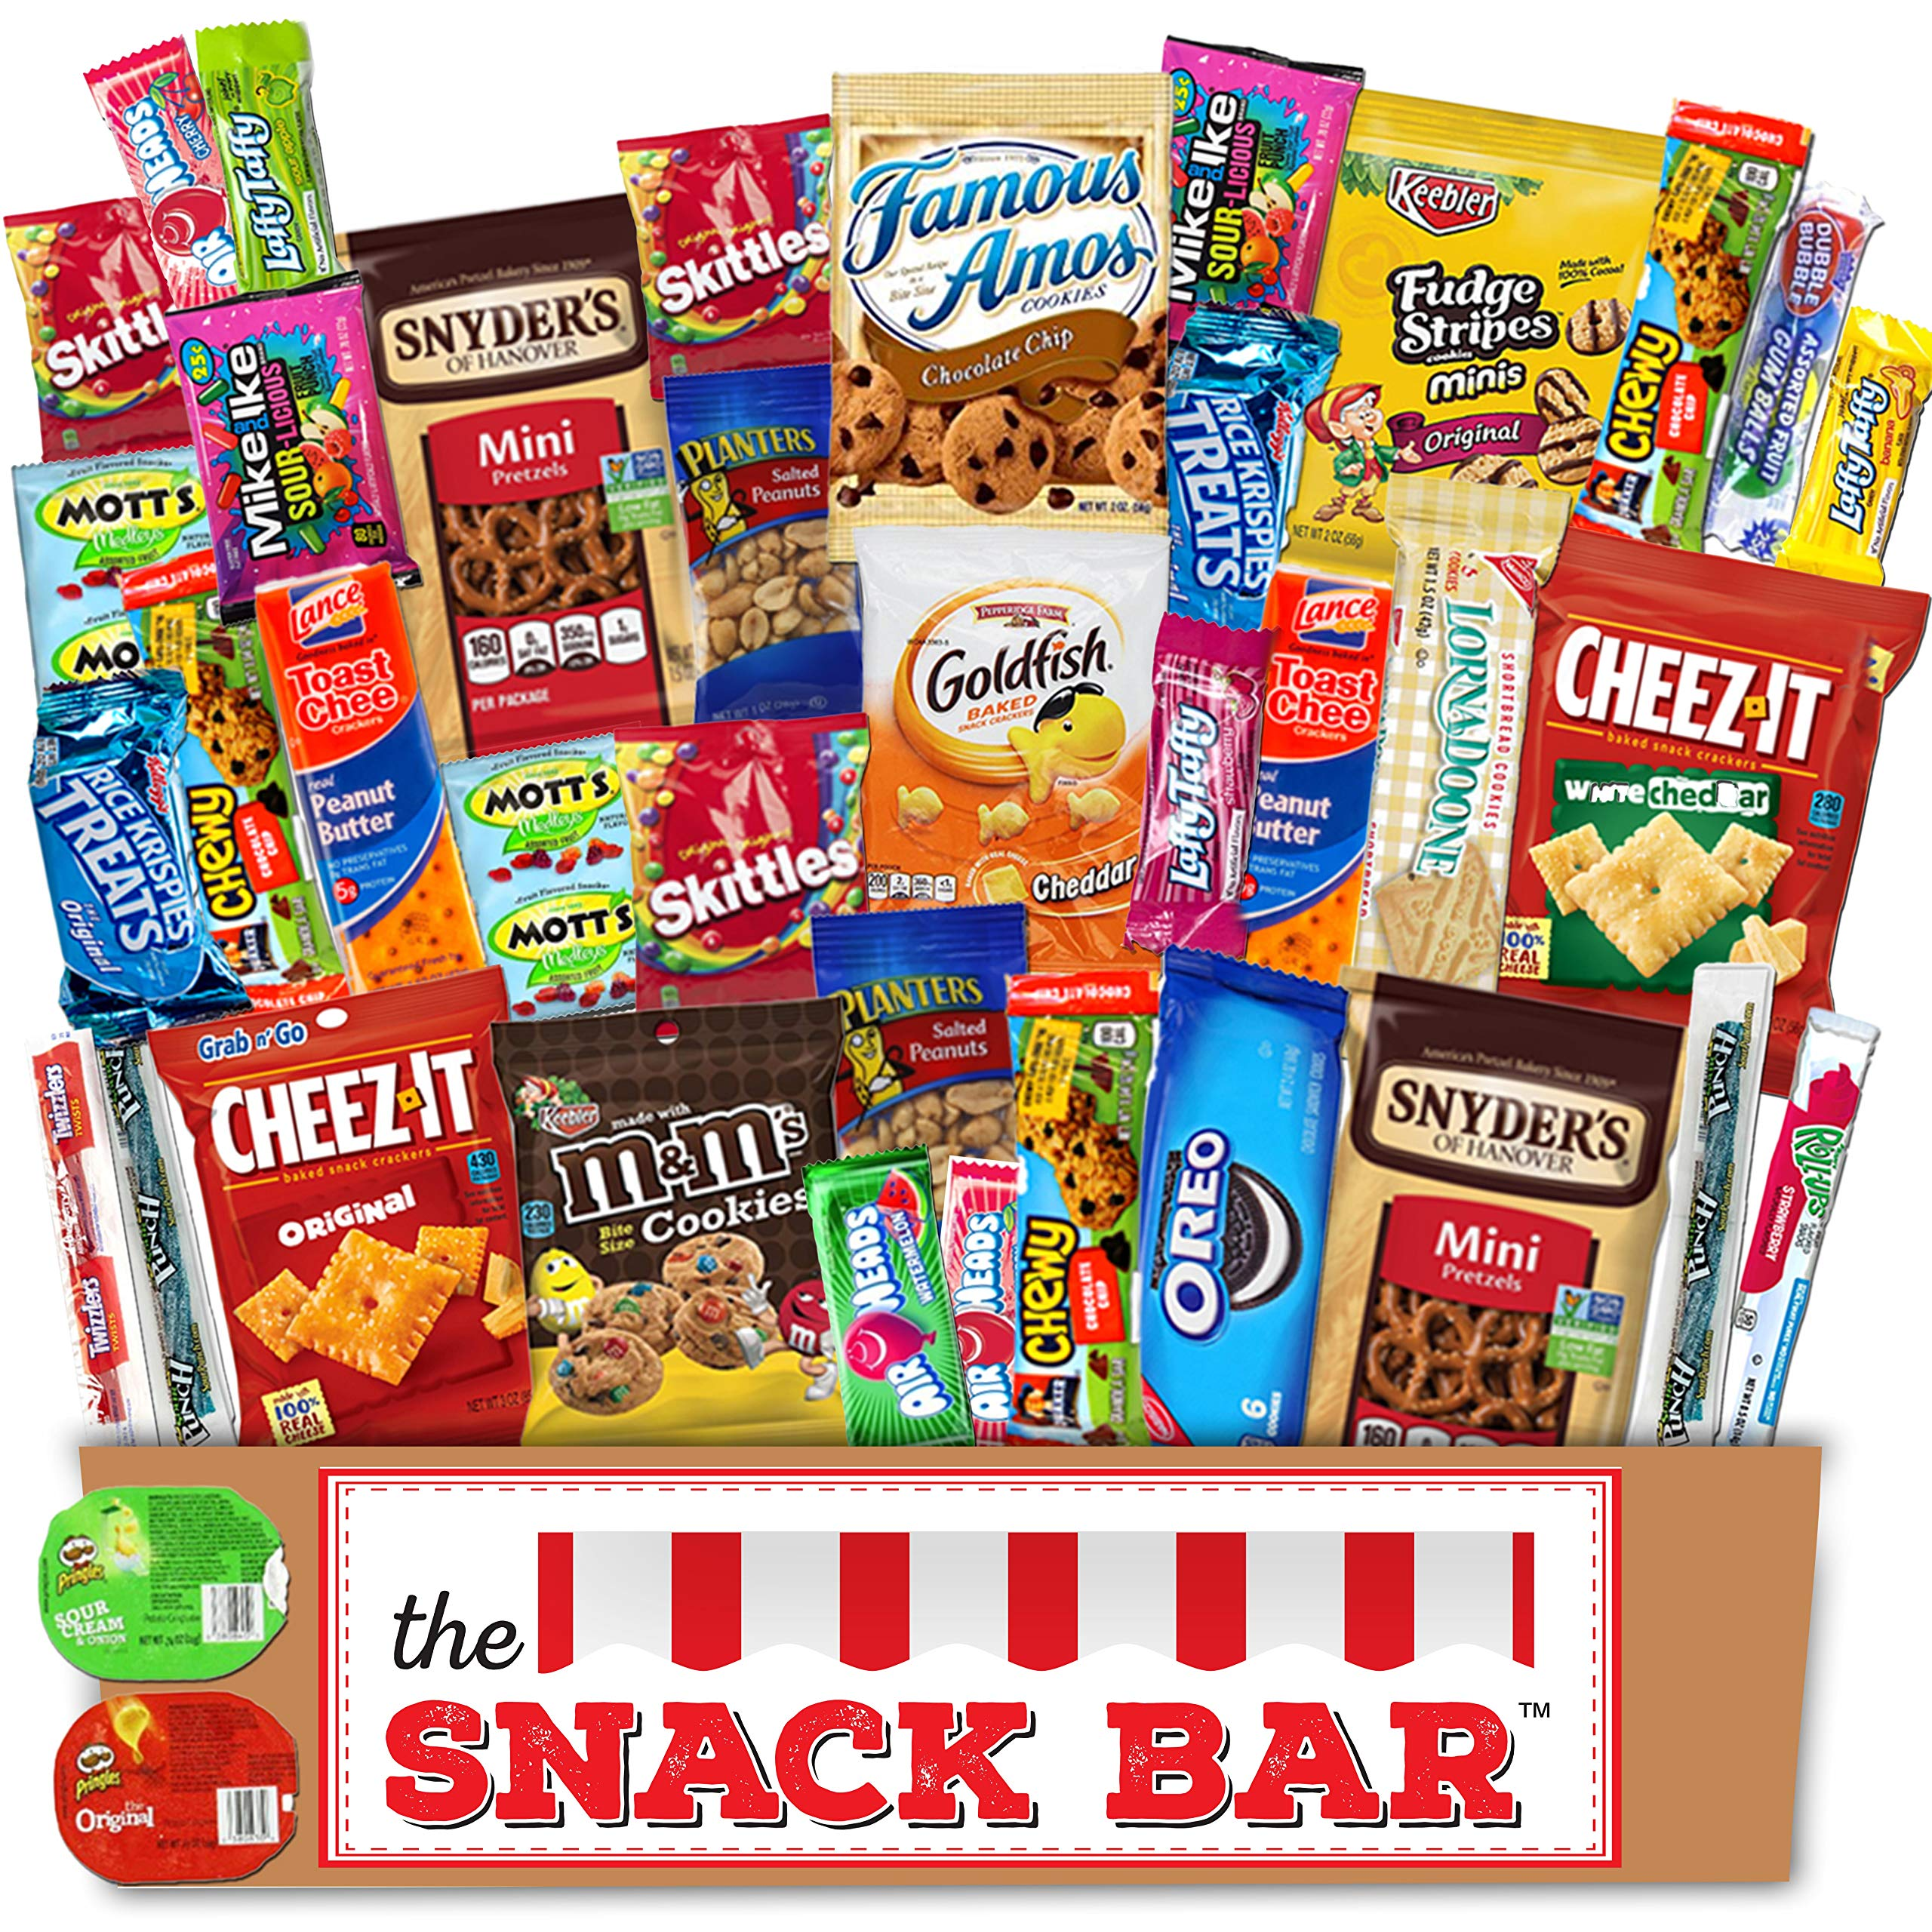 The Snack Bar - Snack Care Package (40 count) - Variety Assortment with American Candy, Fruit Snacks, Gift Snack Box for Lunches, Office, College Students, Road Trips (40)